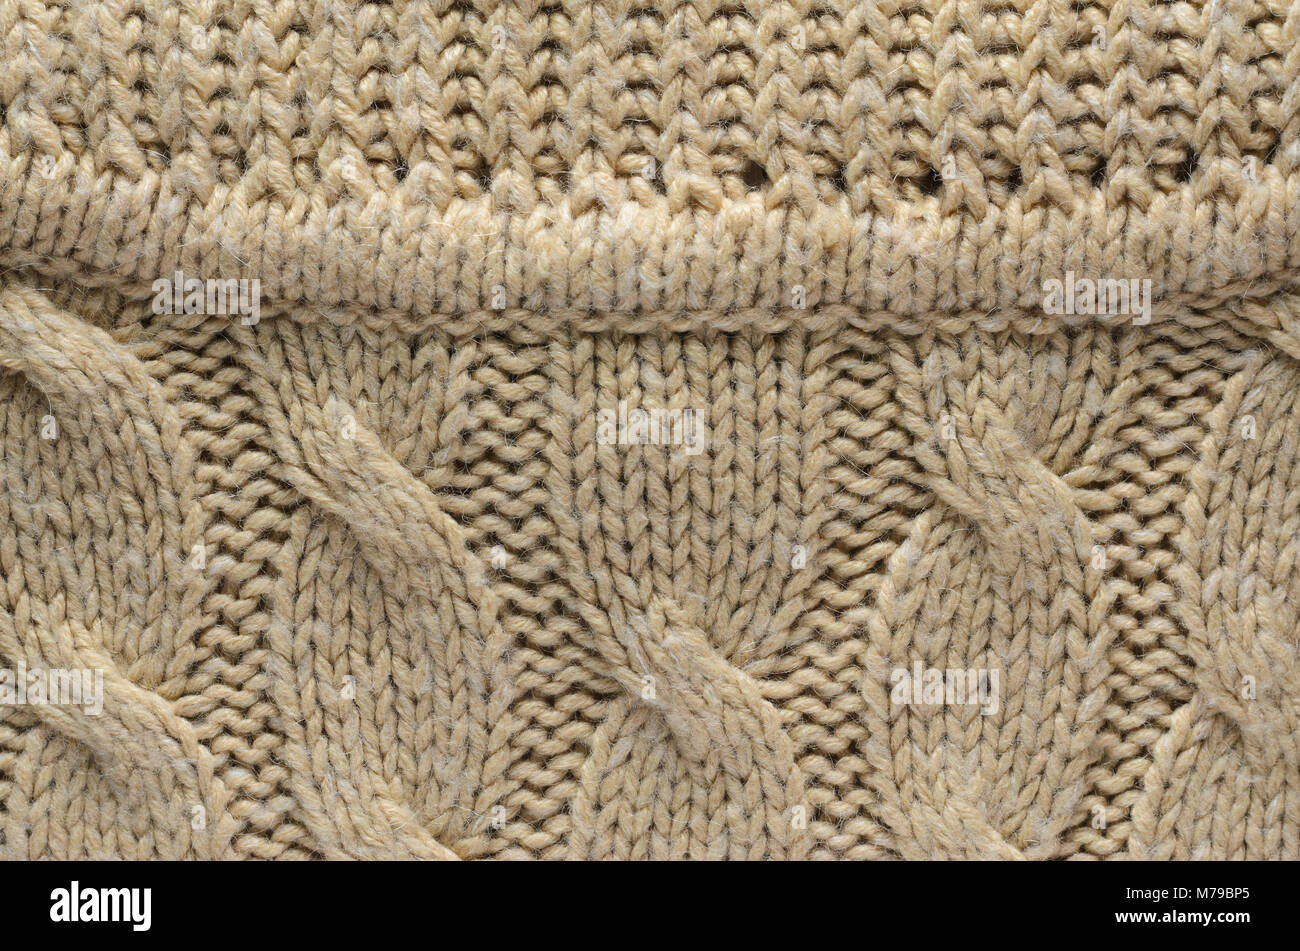 Texture of a Knitted Sweater. Area Abutting the Collar to a Sweater ...